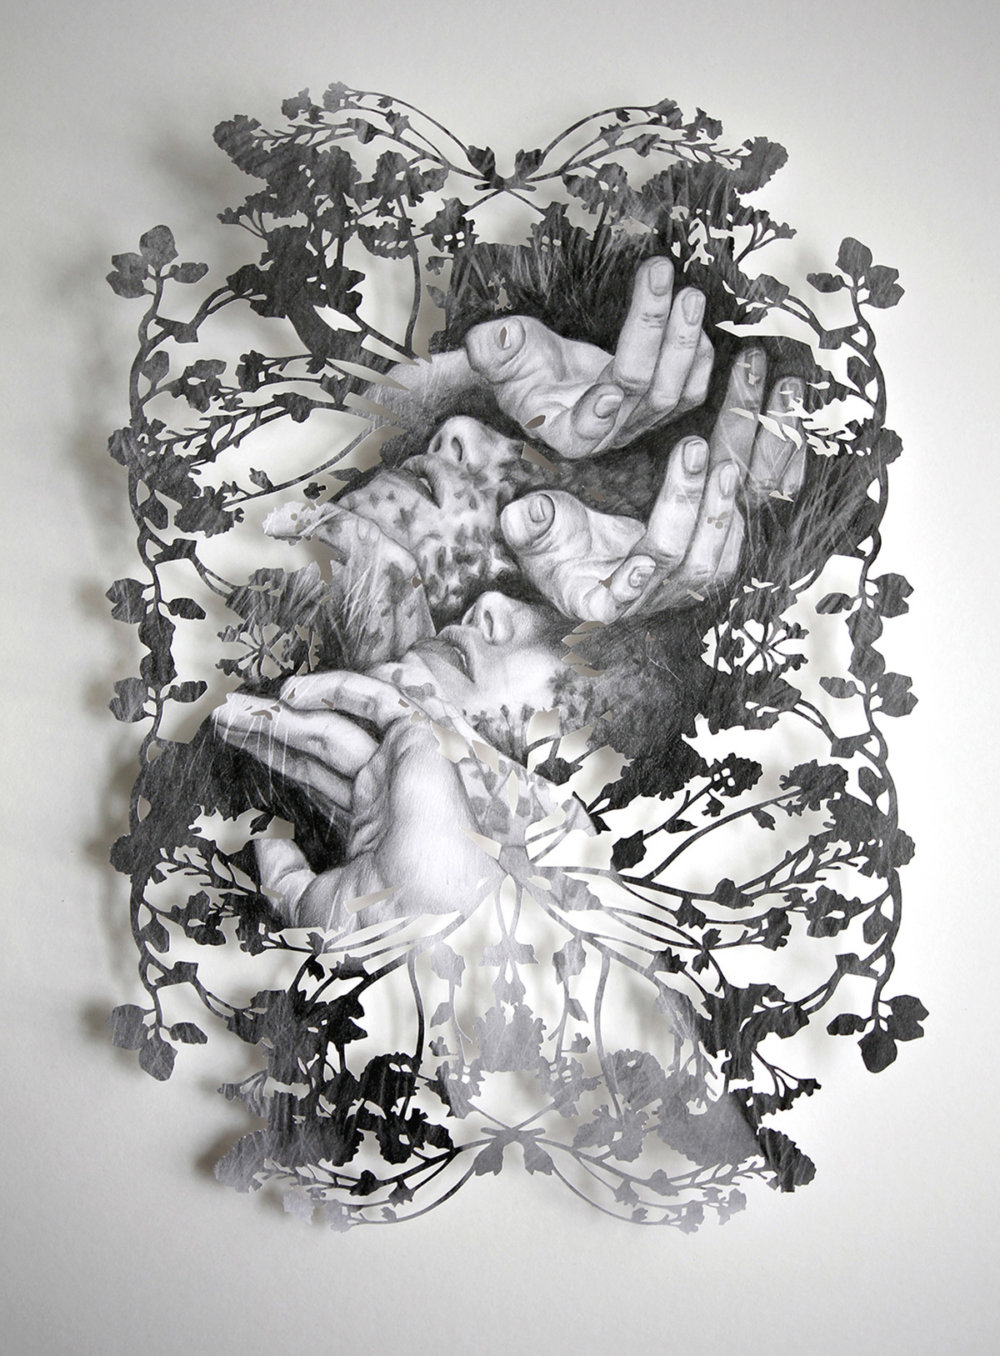 Fragmented Feelings Illustrated Papercut Works By Christine Kim 3